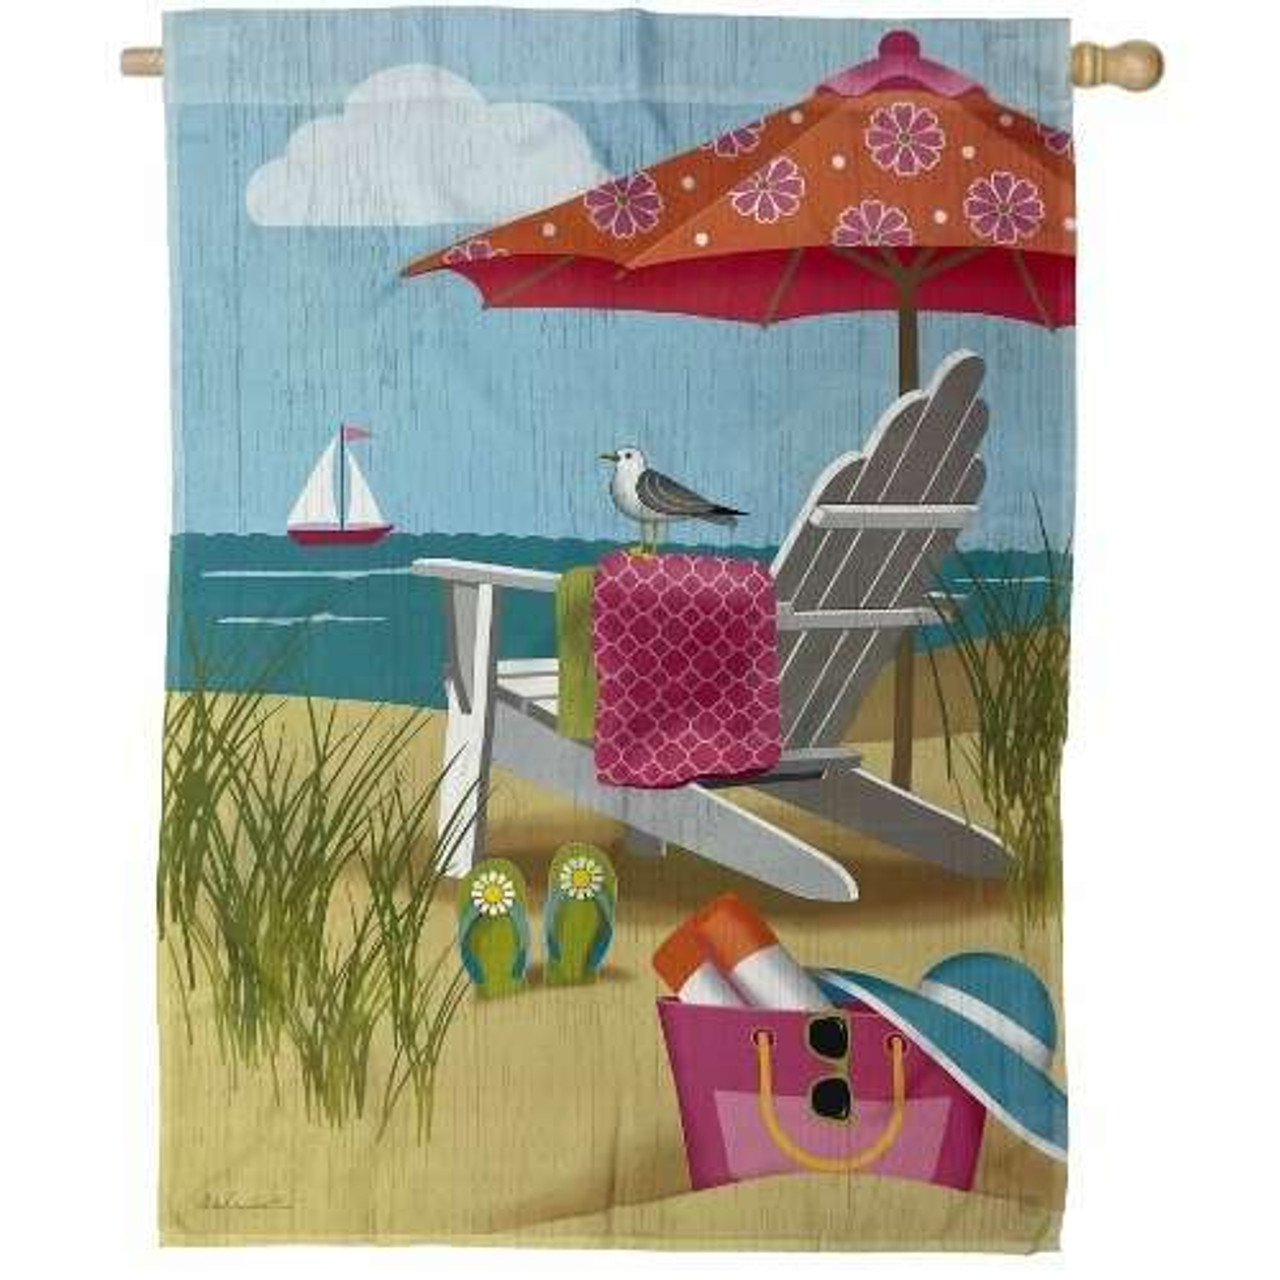 Better at the Beach House Flag with seagull, sand, and ocean, and sailboat background